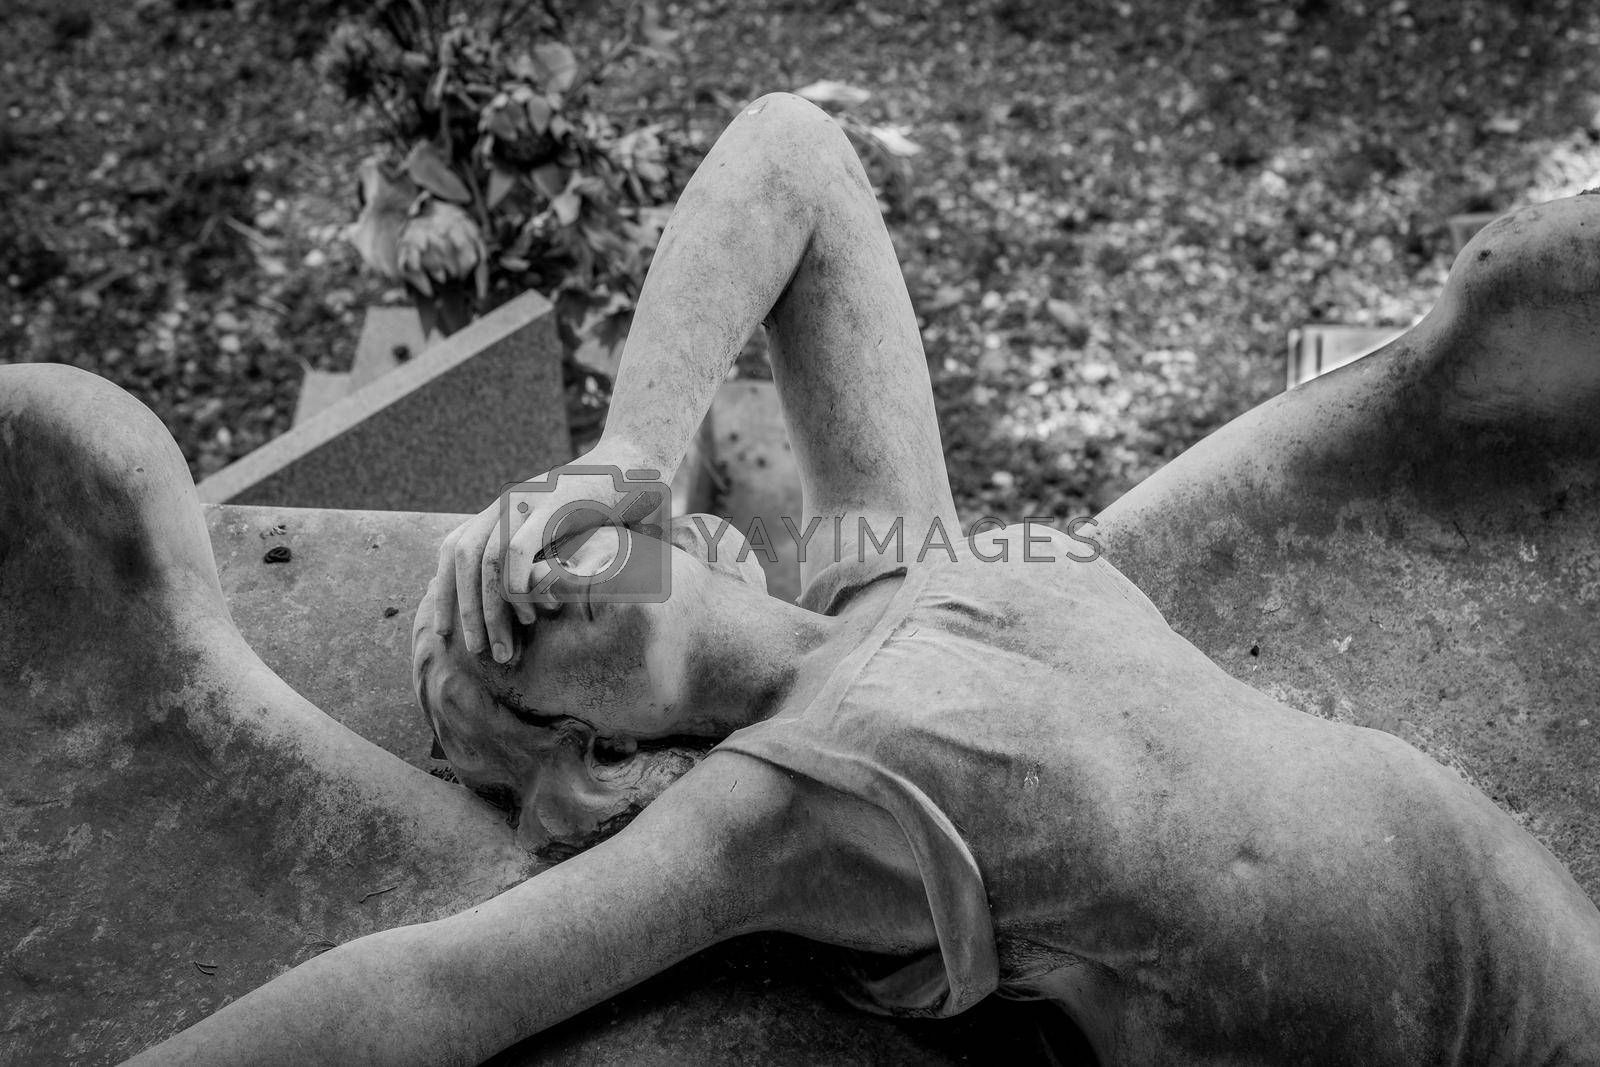 GENOA, ITALY - June 2020: antique statue of angel (1910, marble) in a Christian Catholic cemetery - Italy